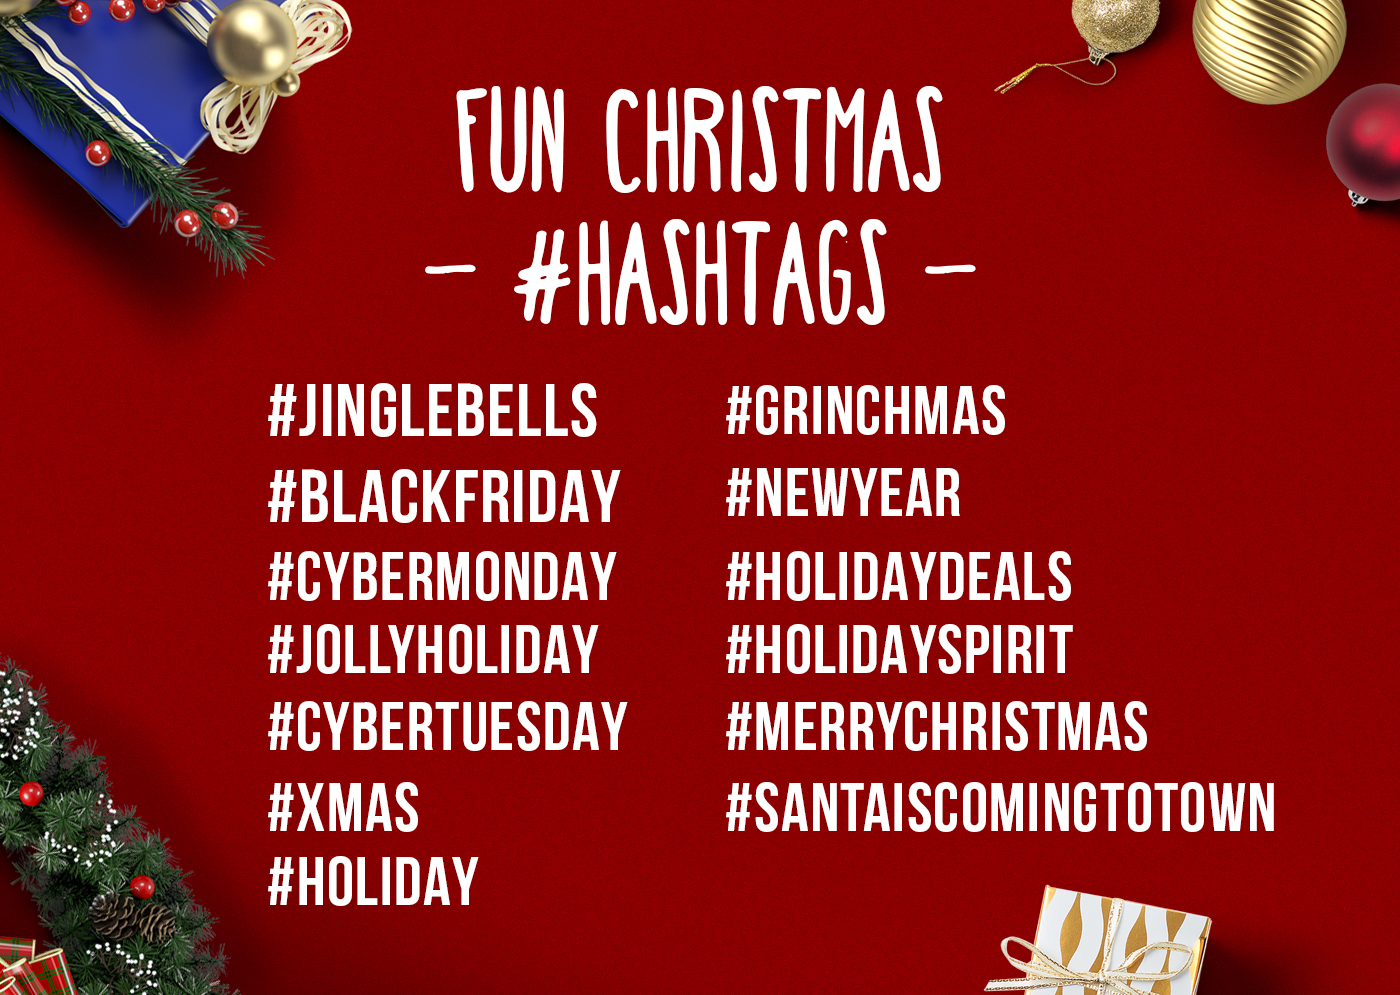 marketing tip: Use holiday hashtags.